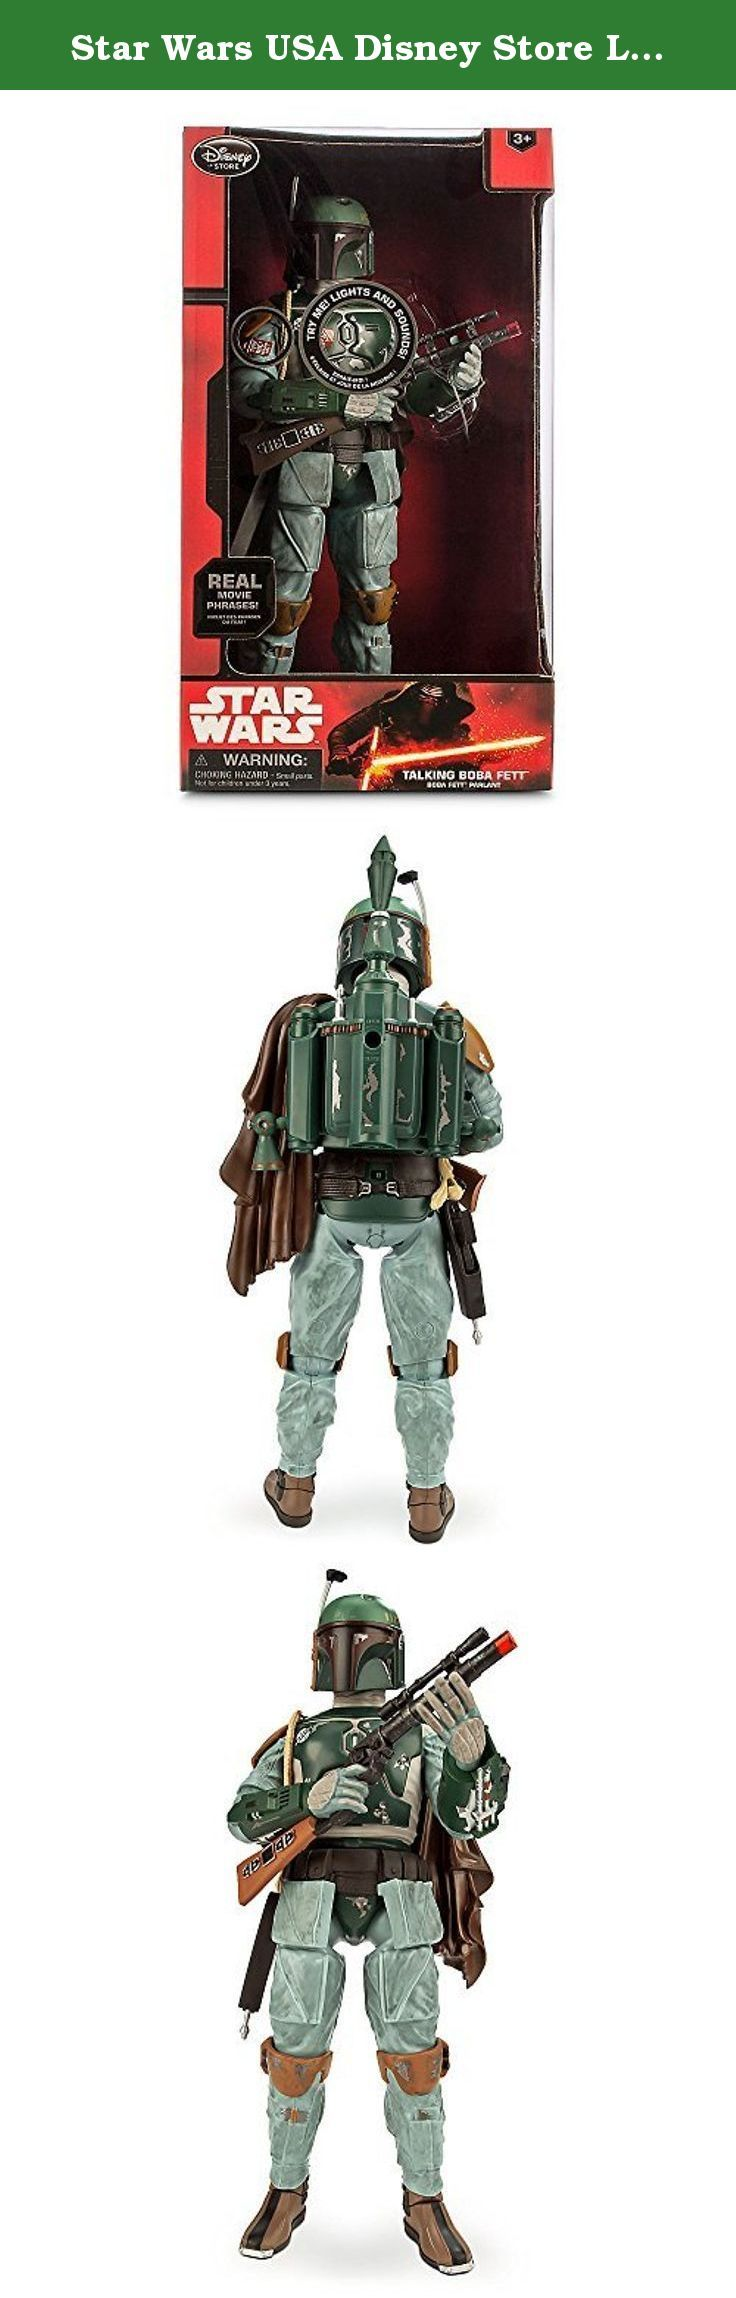 Star Wars USA Disney Store Limited 13.5 inches Talking figure Boba Fett / STAR WARS BOBA FETT. It's shipped off from Japan.